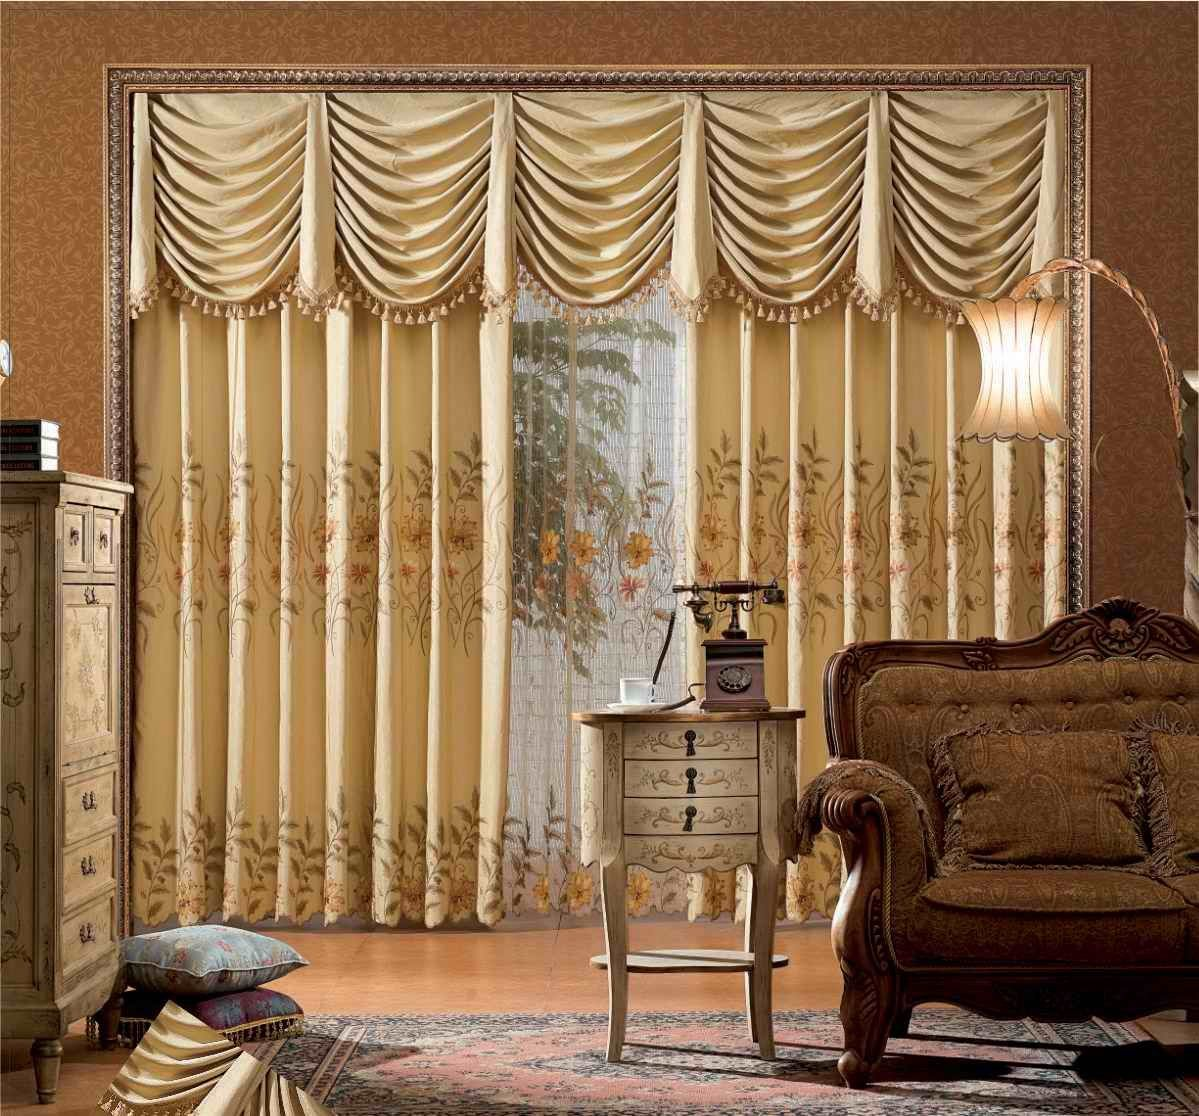 Window Curtain For Living Room Make Modern Living Room Curtains Http Posthomesltdcom Wp